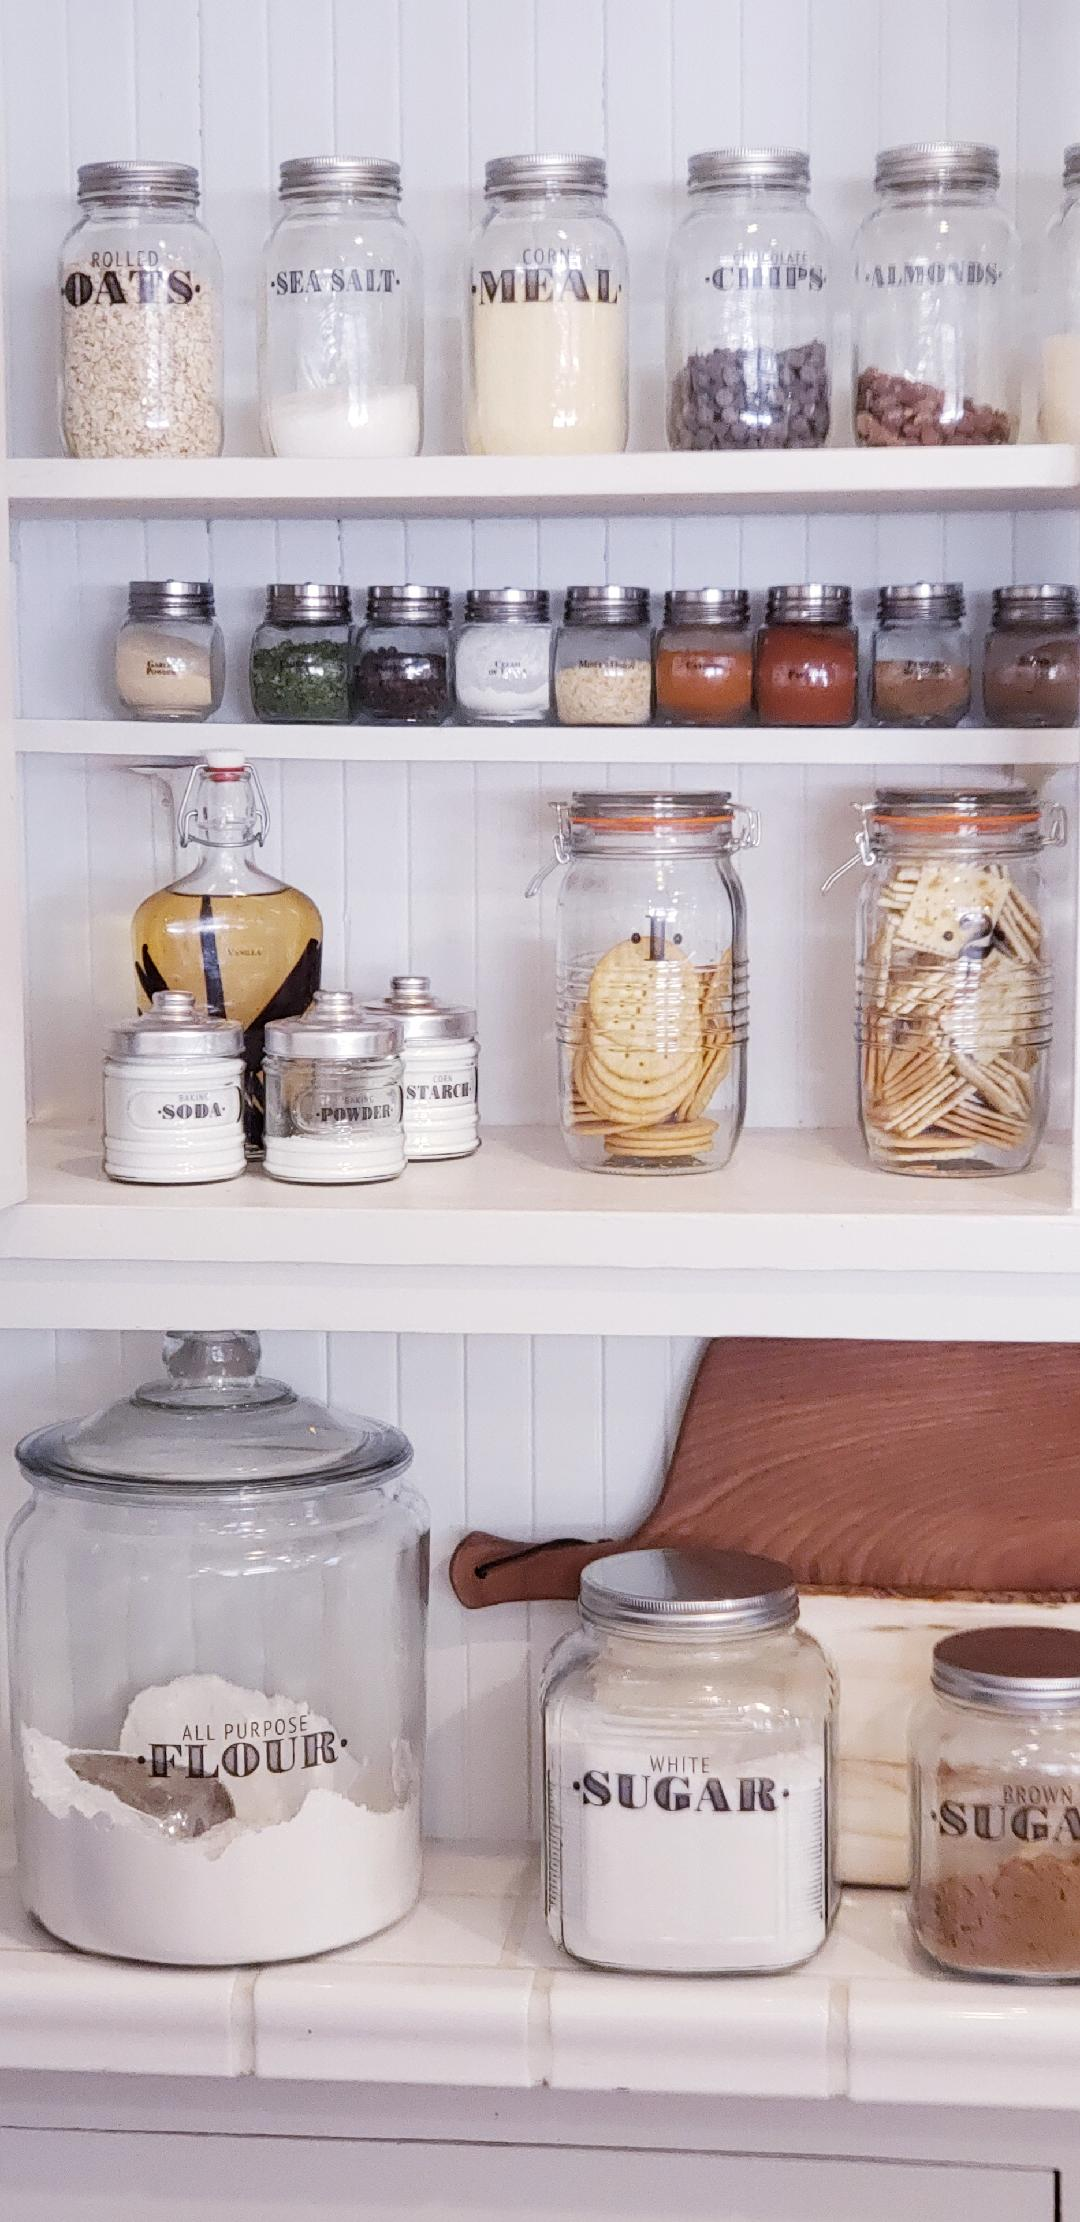 farmhouse pantry organized with clear jars and labels including baking items